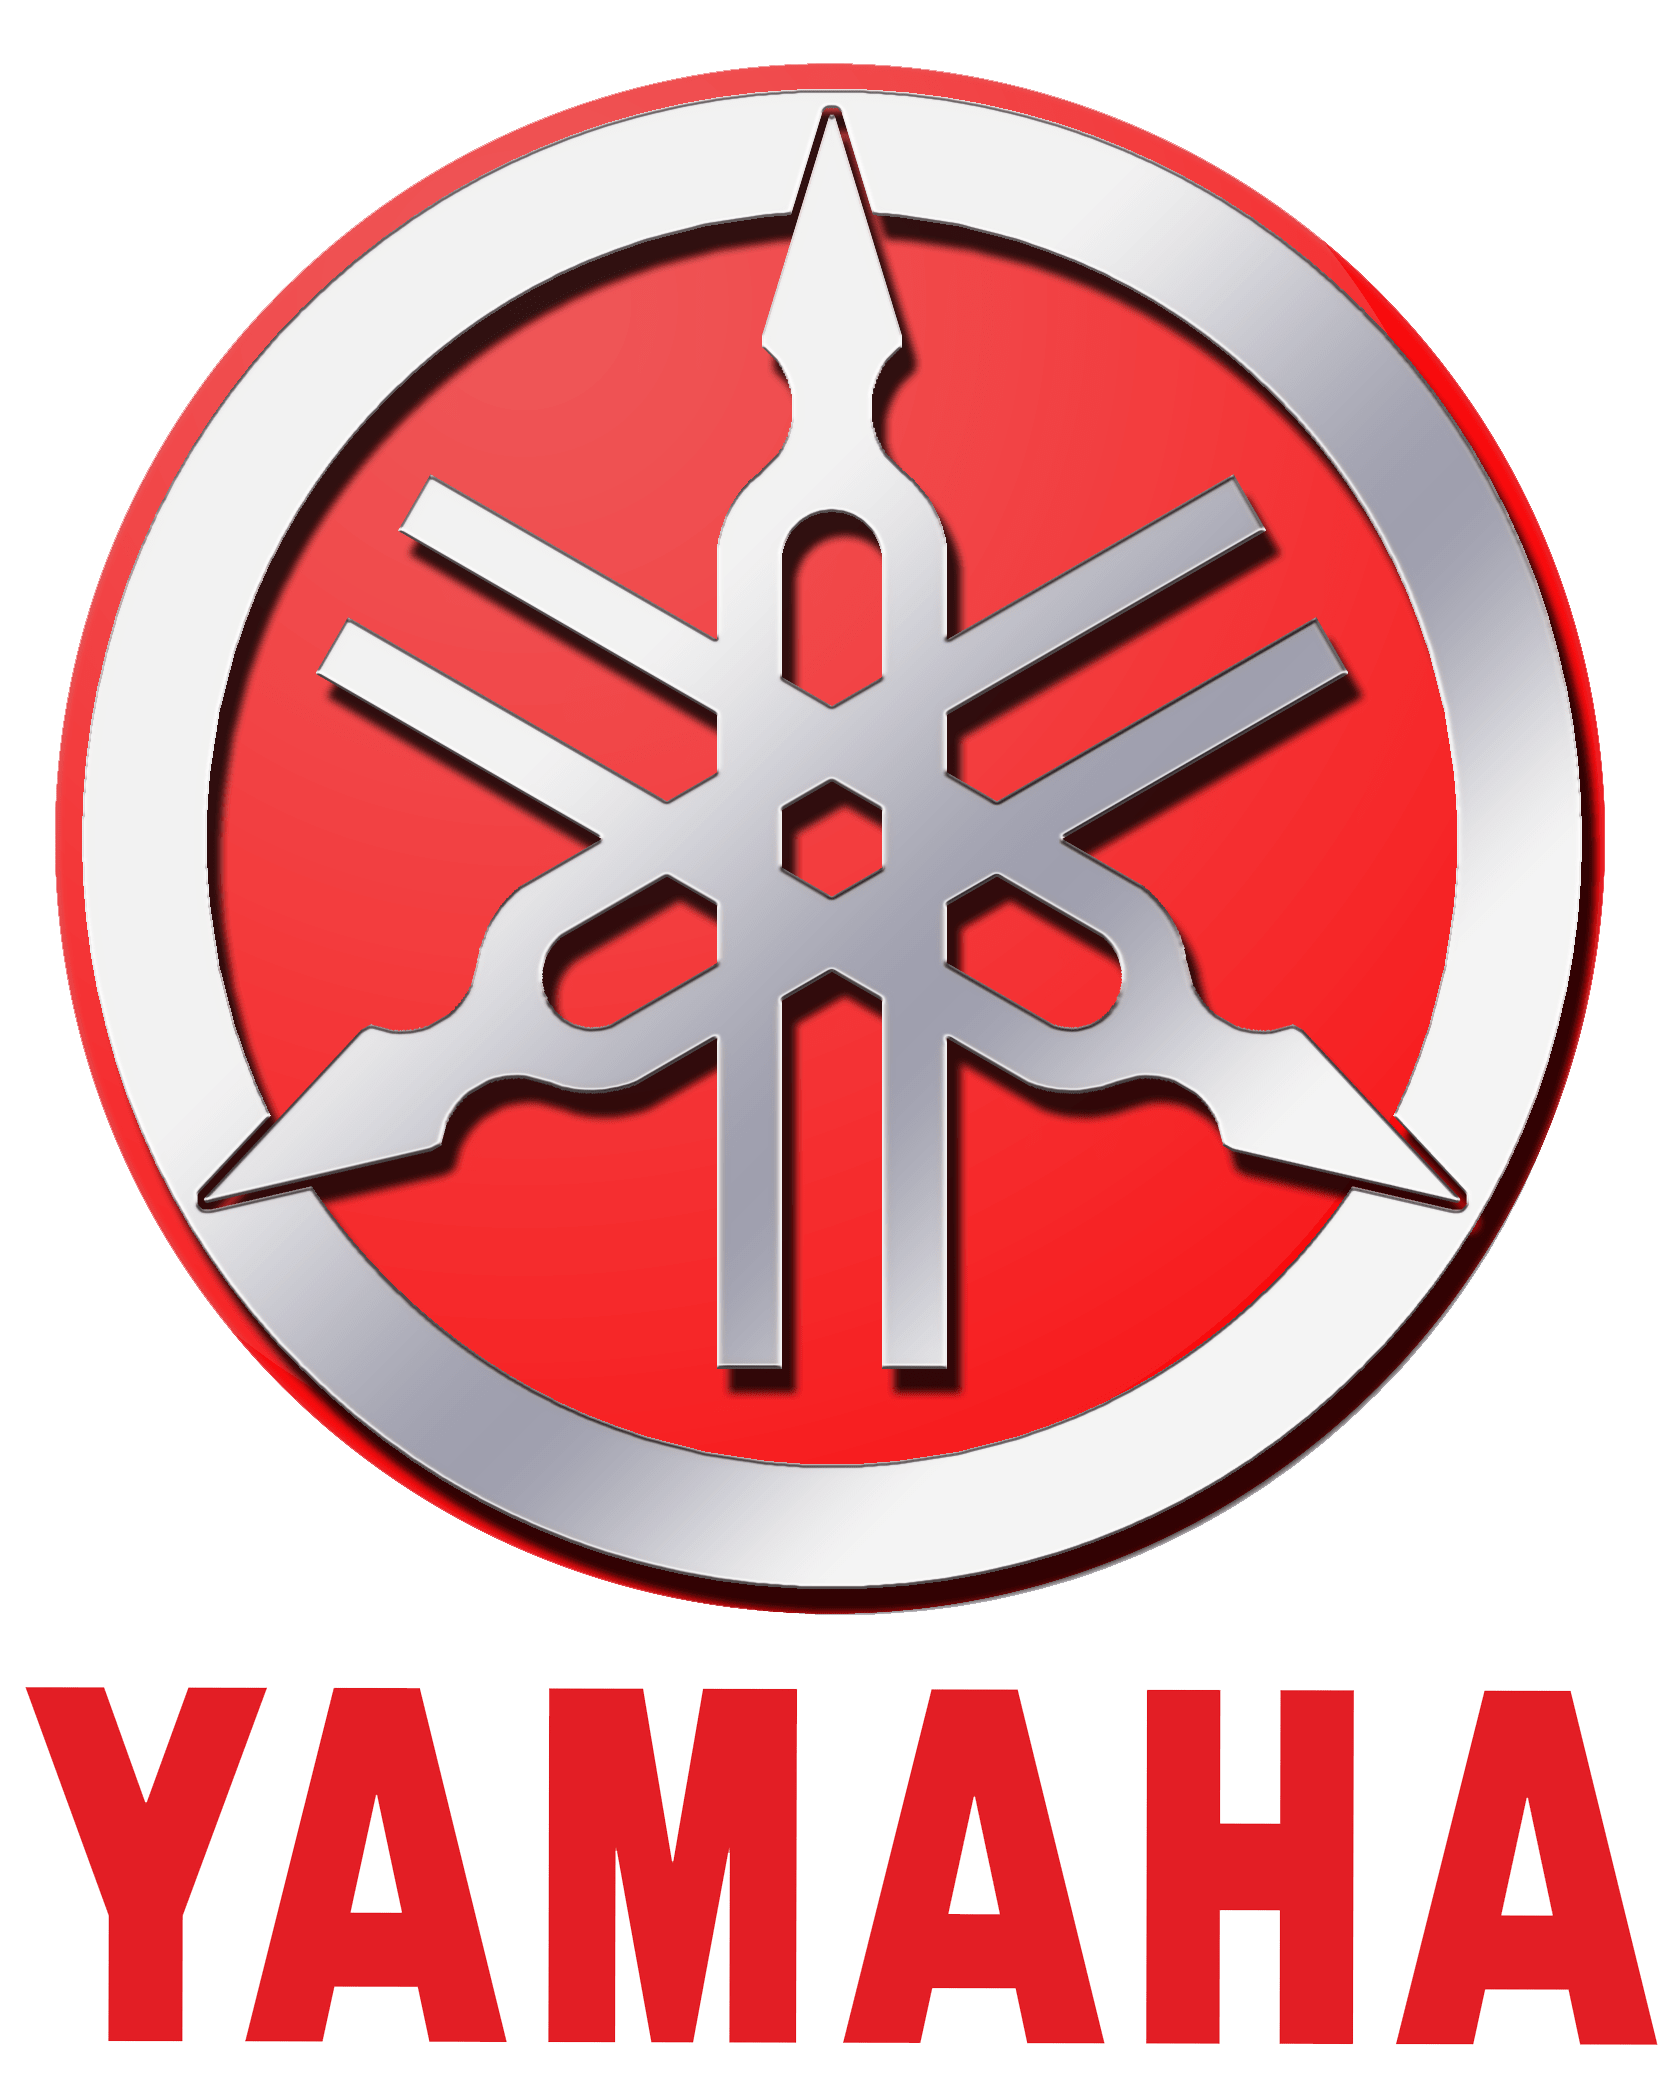 Motorcycle clipart motorcycle repair. Yamaha logo red rock